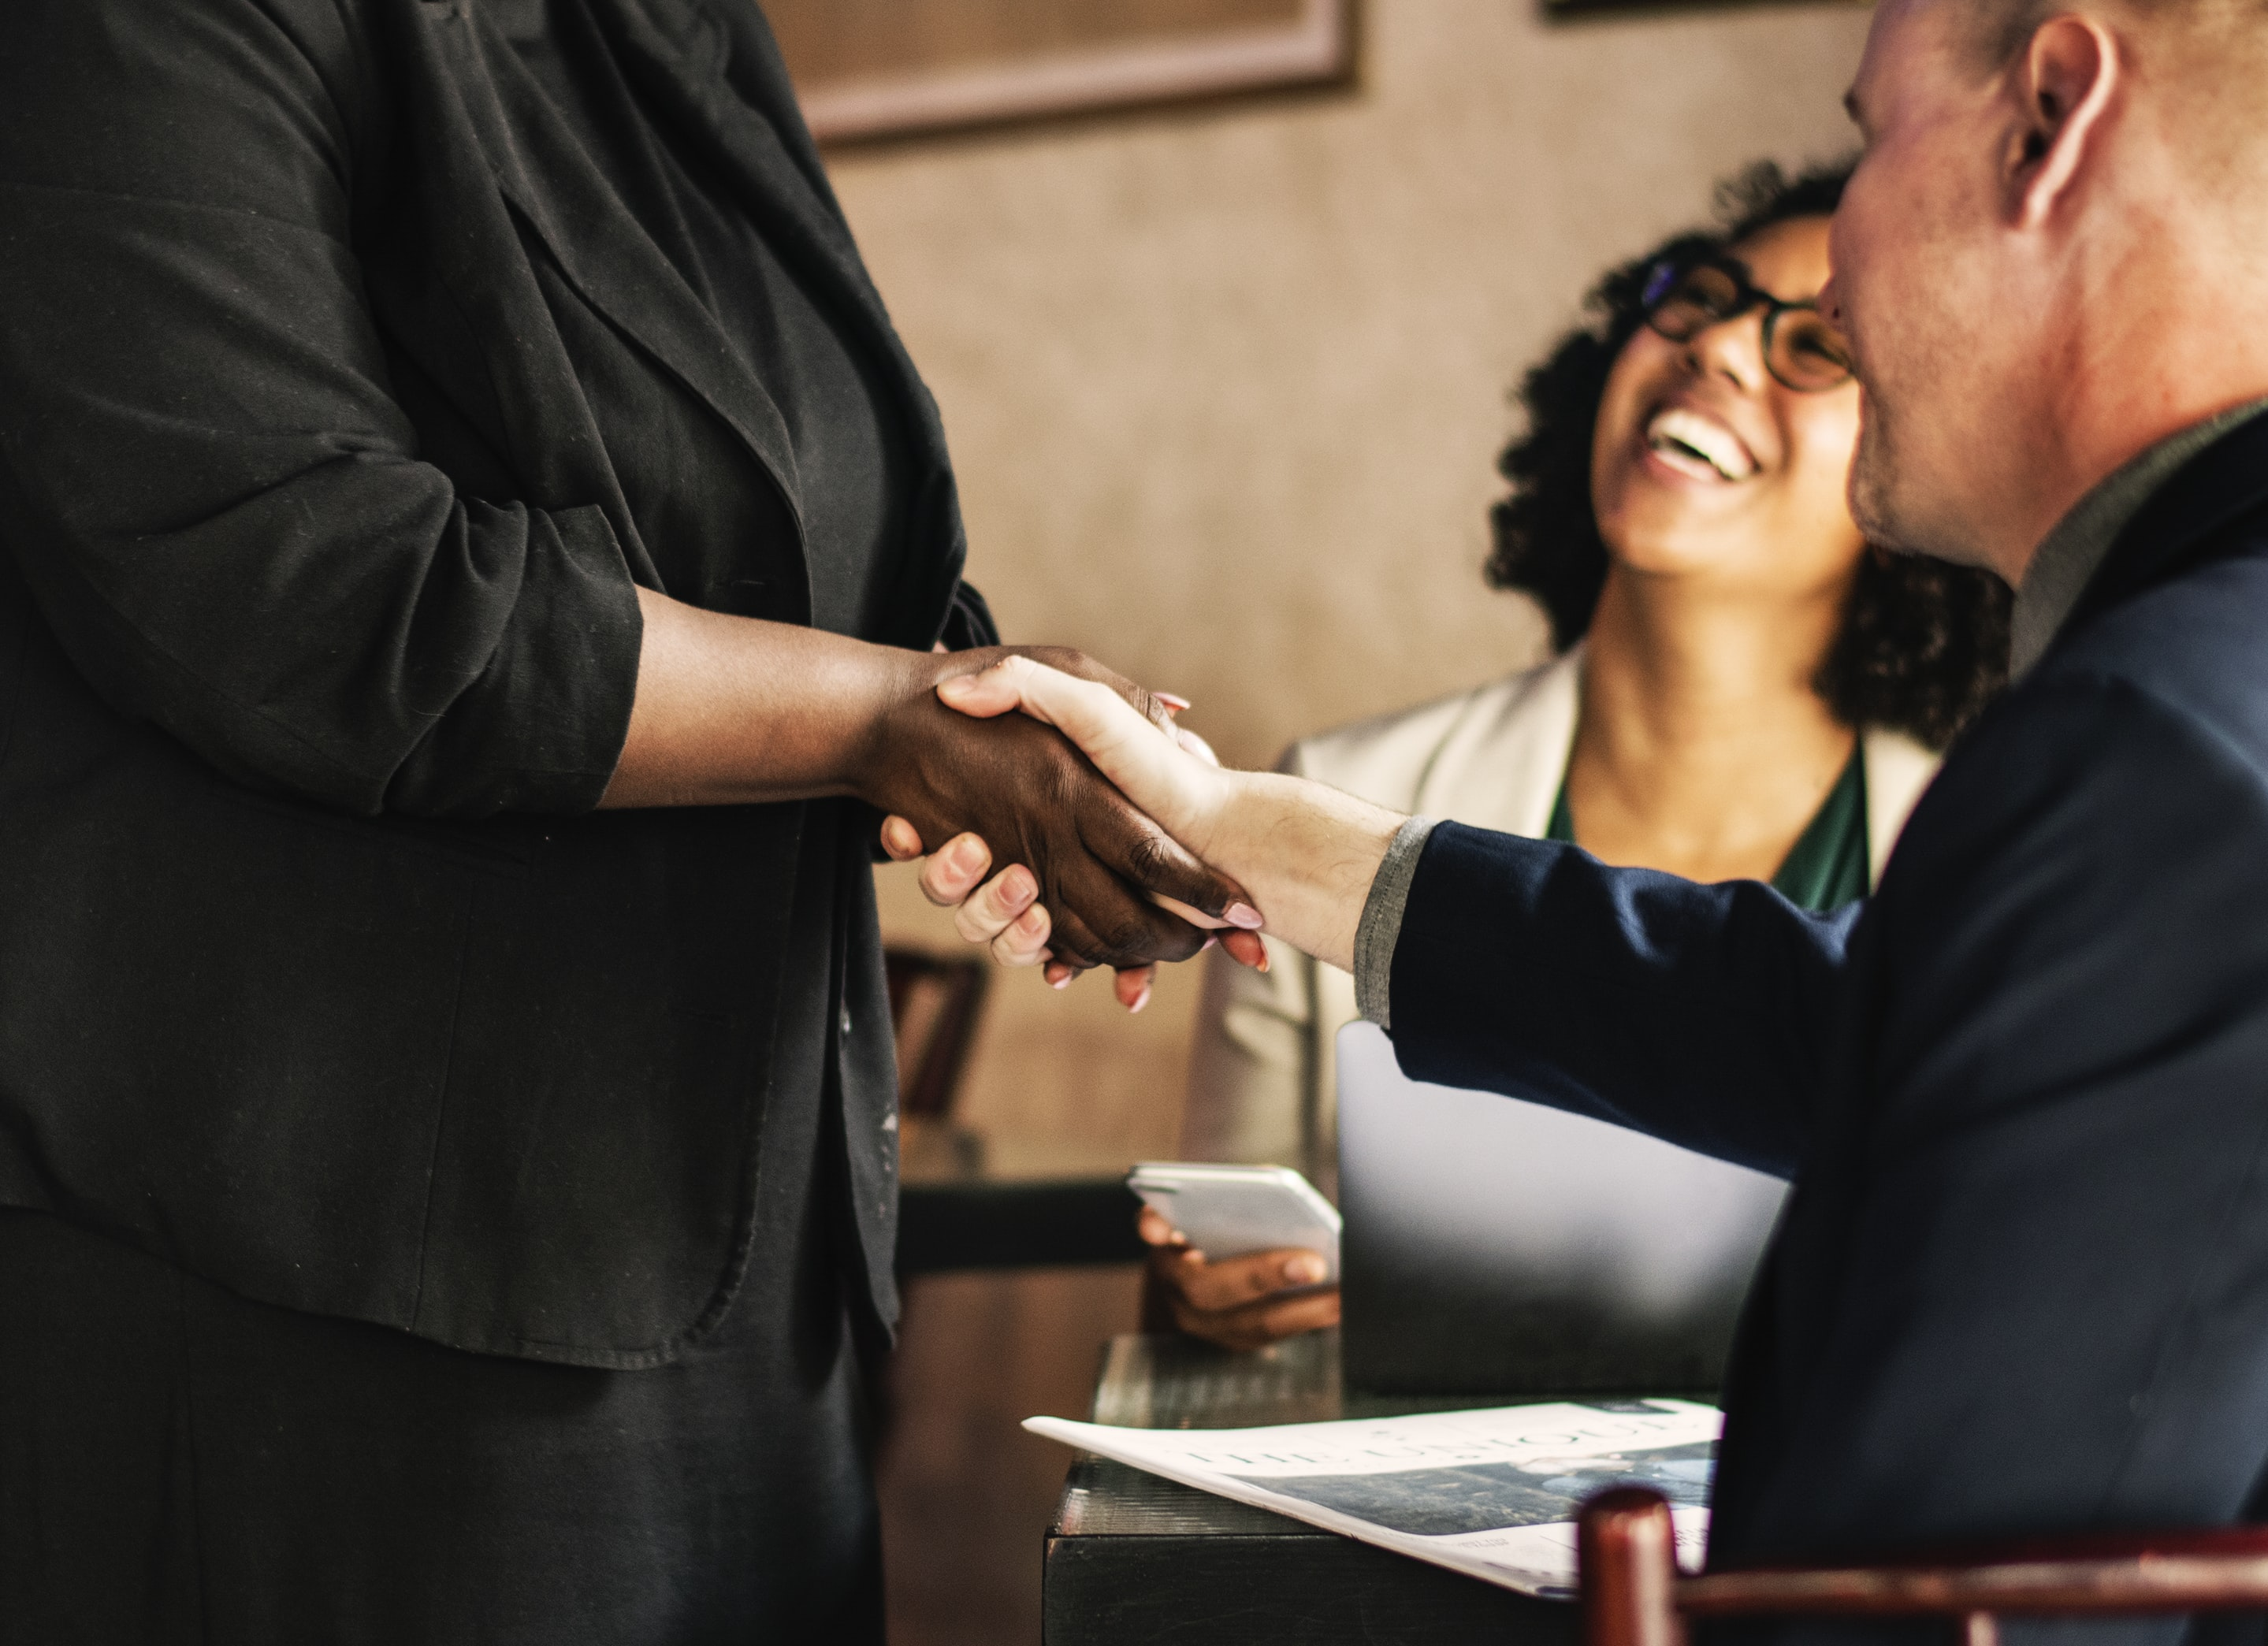 Try attending a networking event to get inspired